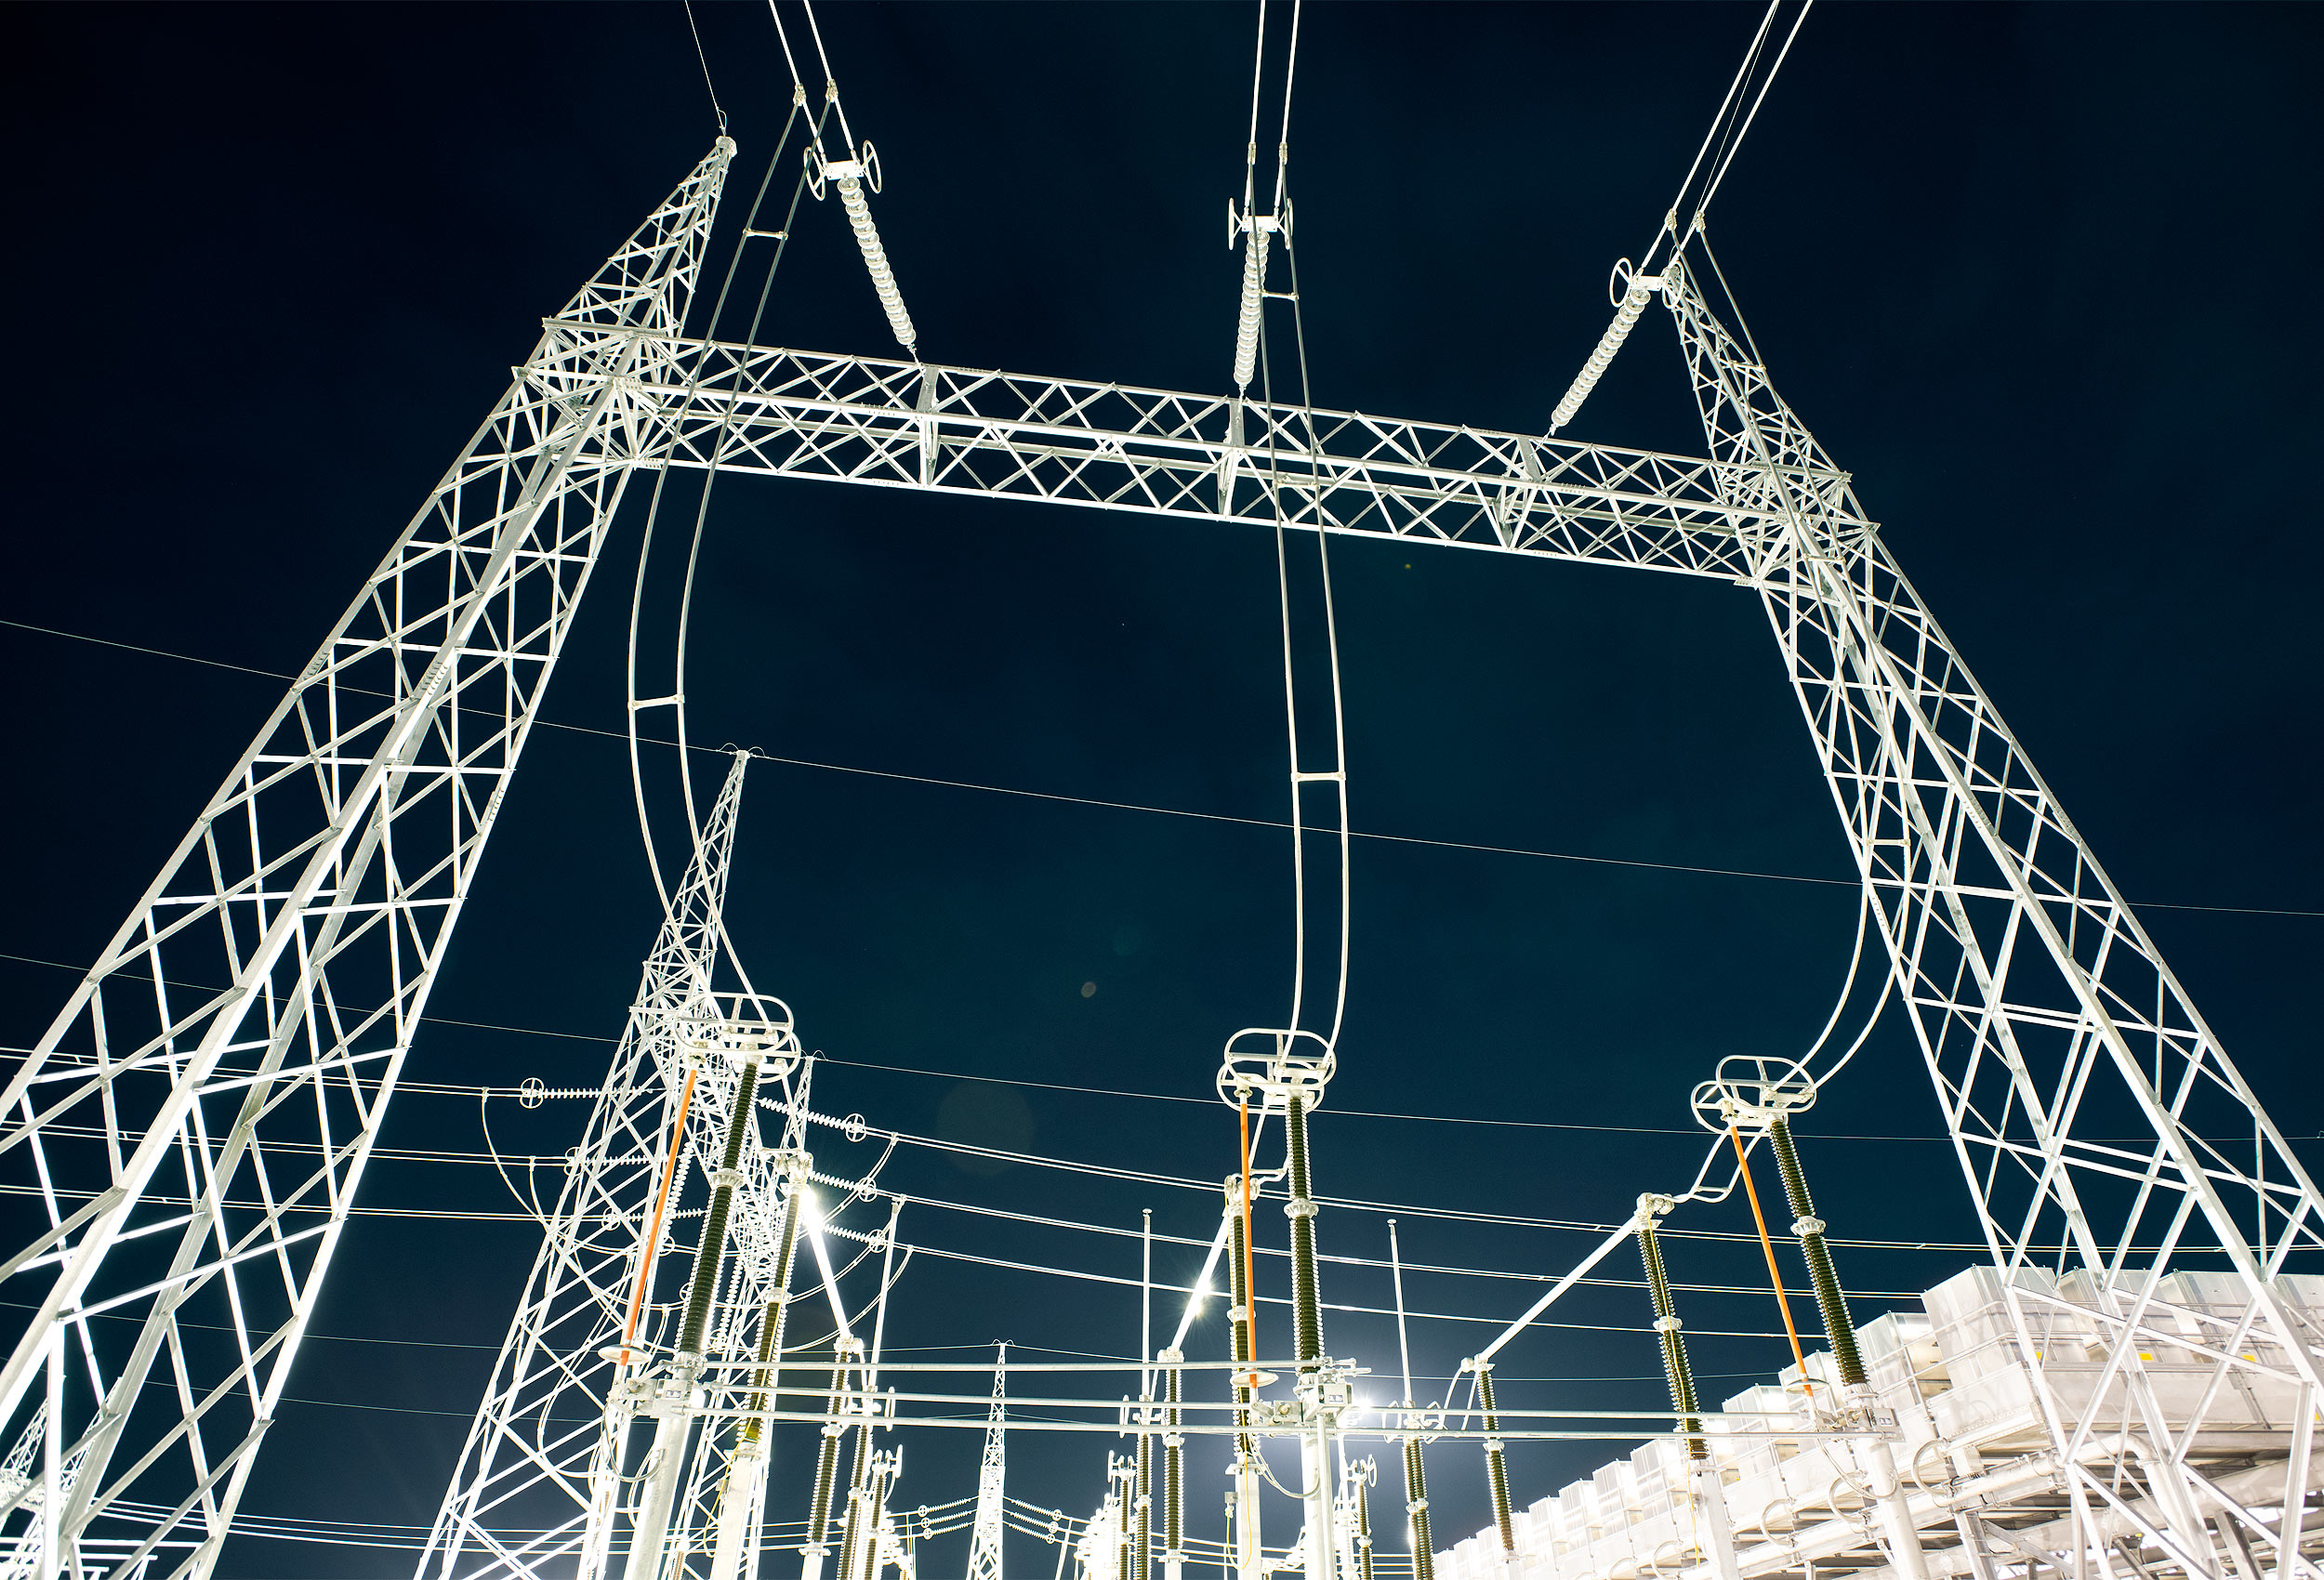 HVDC by corporate industrial photographer Kristopher Grunert